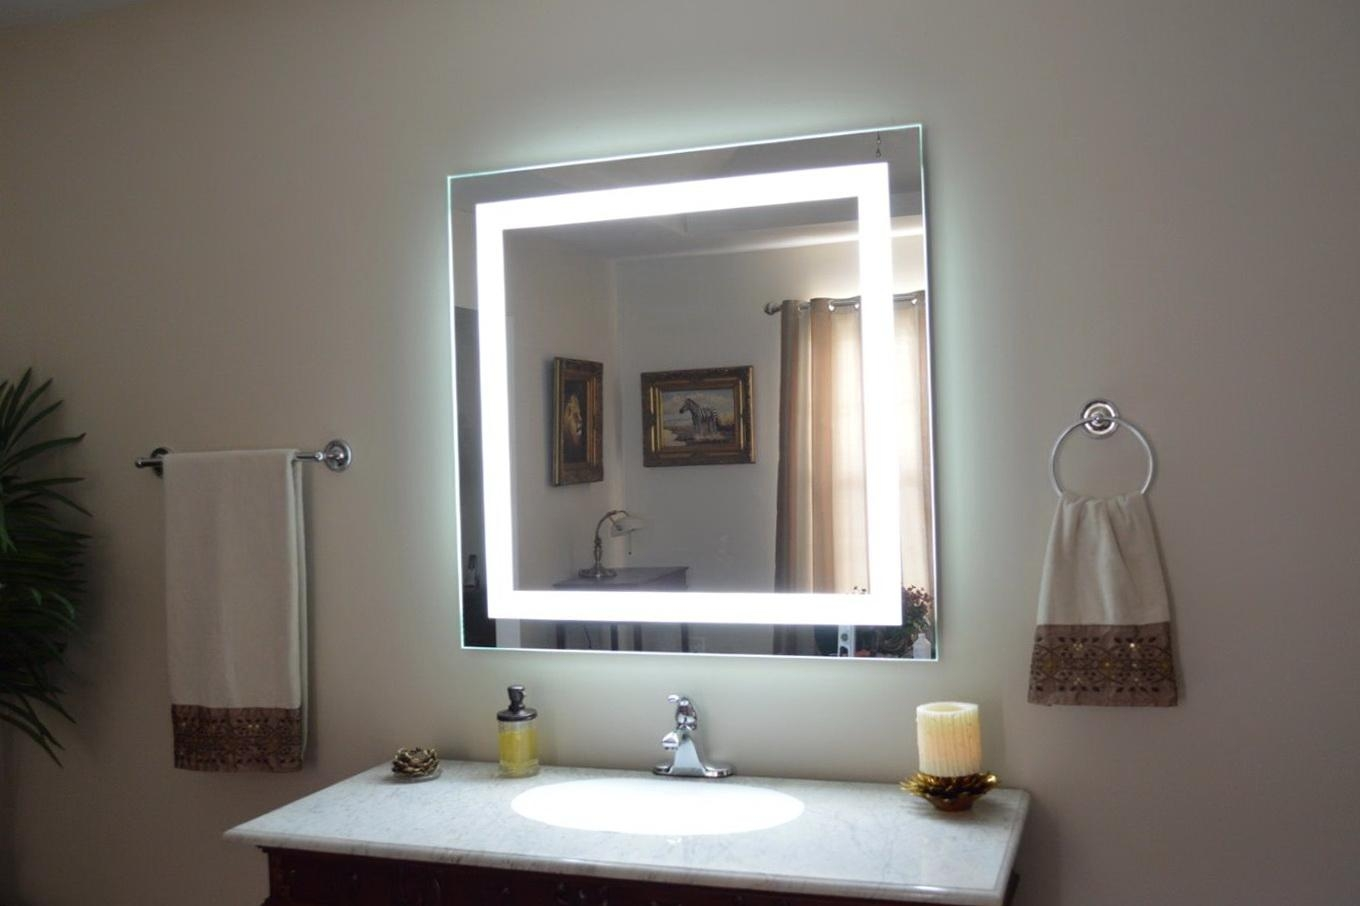 20 Inspirations Bathroom Wall Mirrors With Lights